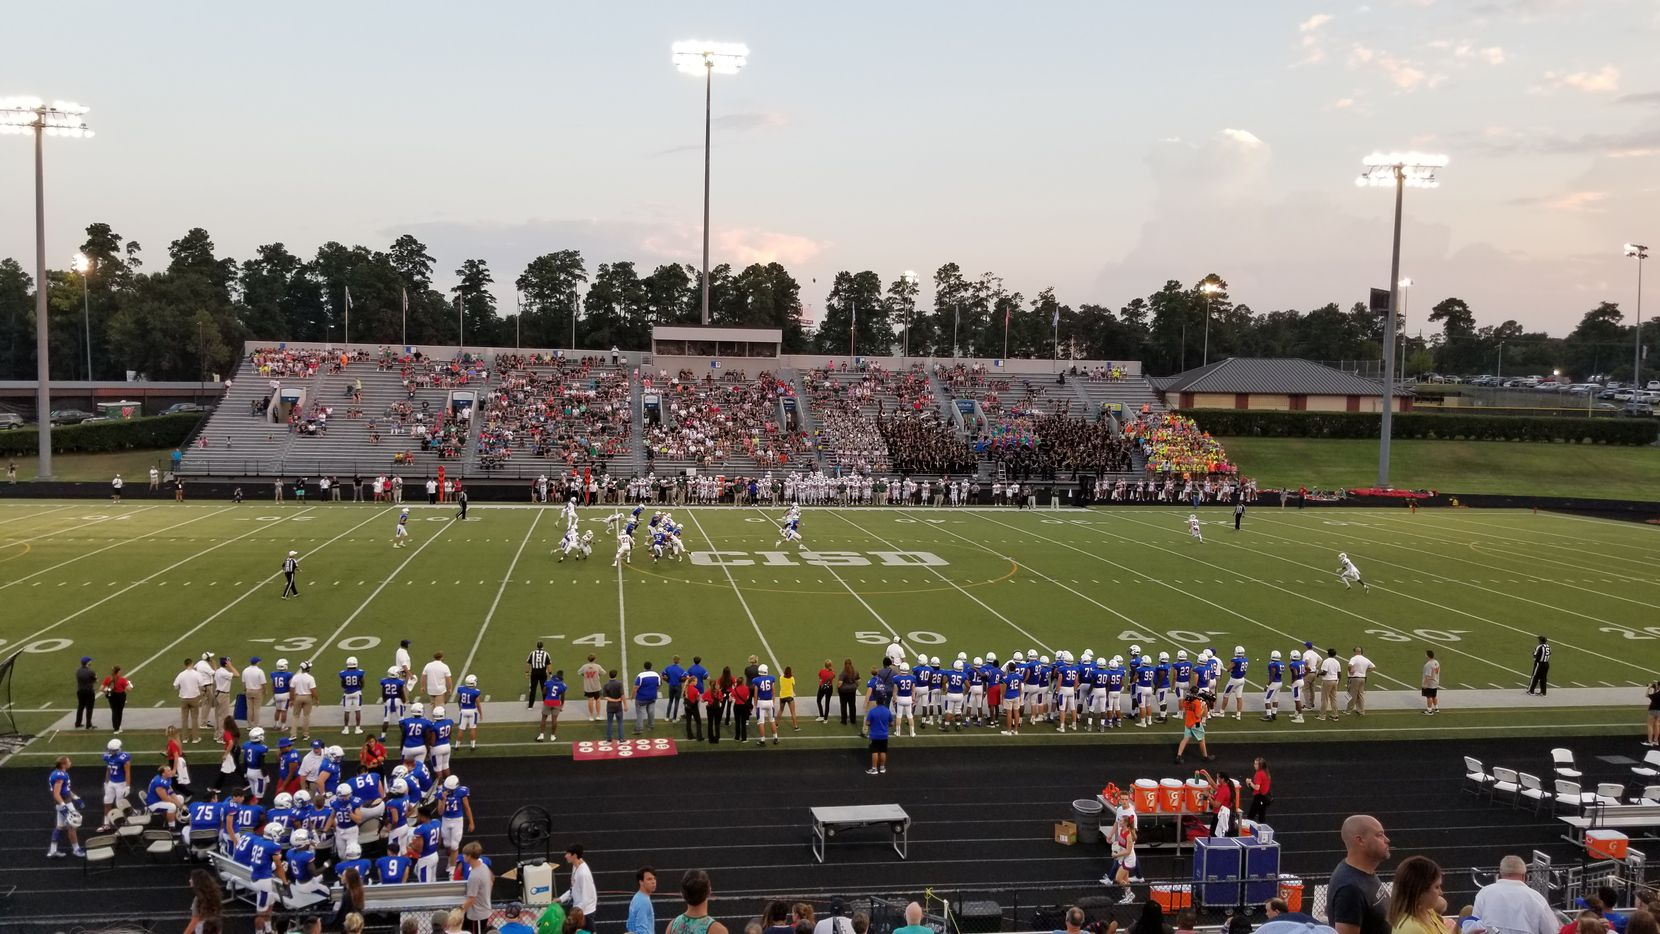 Friday night lights at Buddy Moorhead Stadium in Conroe, Texas, seat of Montgomery County north of Houston. The Woodlands High School beat Oak Ridge 20-14 on Sept. 13, 2019.